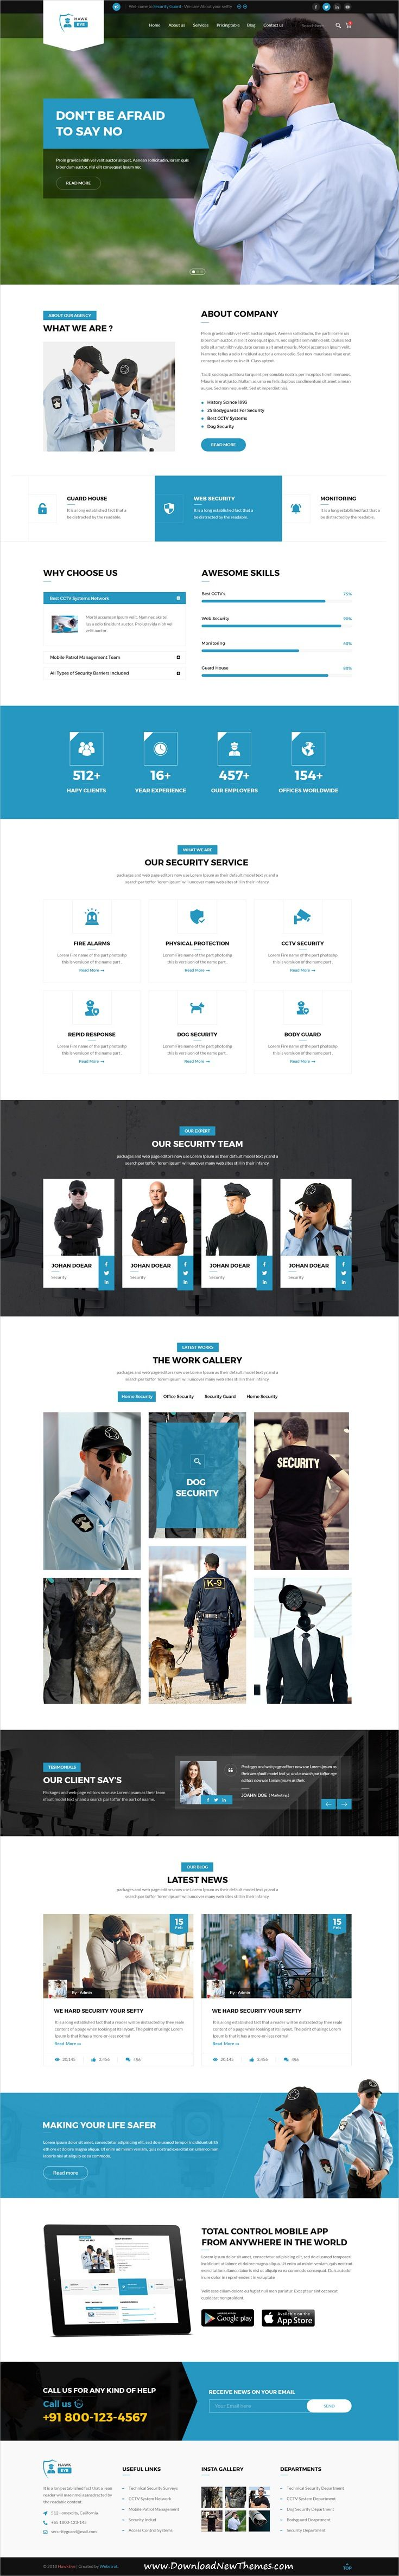 Hawkeye Is Clean And Modern Design Psd Template For Security Cctv Police And Guarding Services Website With 2 Homepage Layouts Diseno Web Disenos De Unas